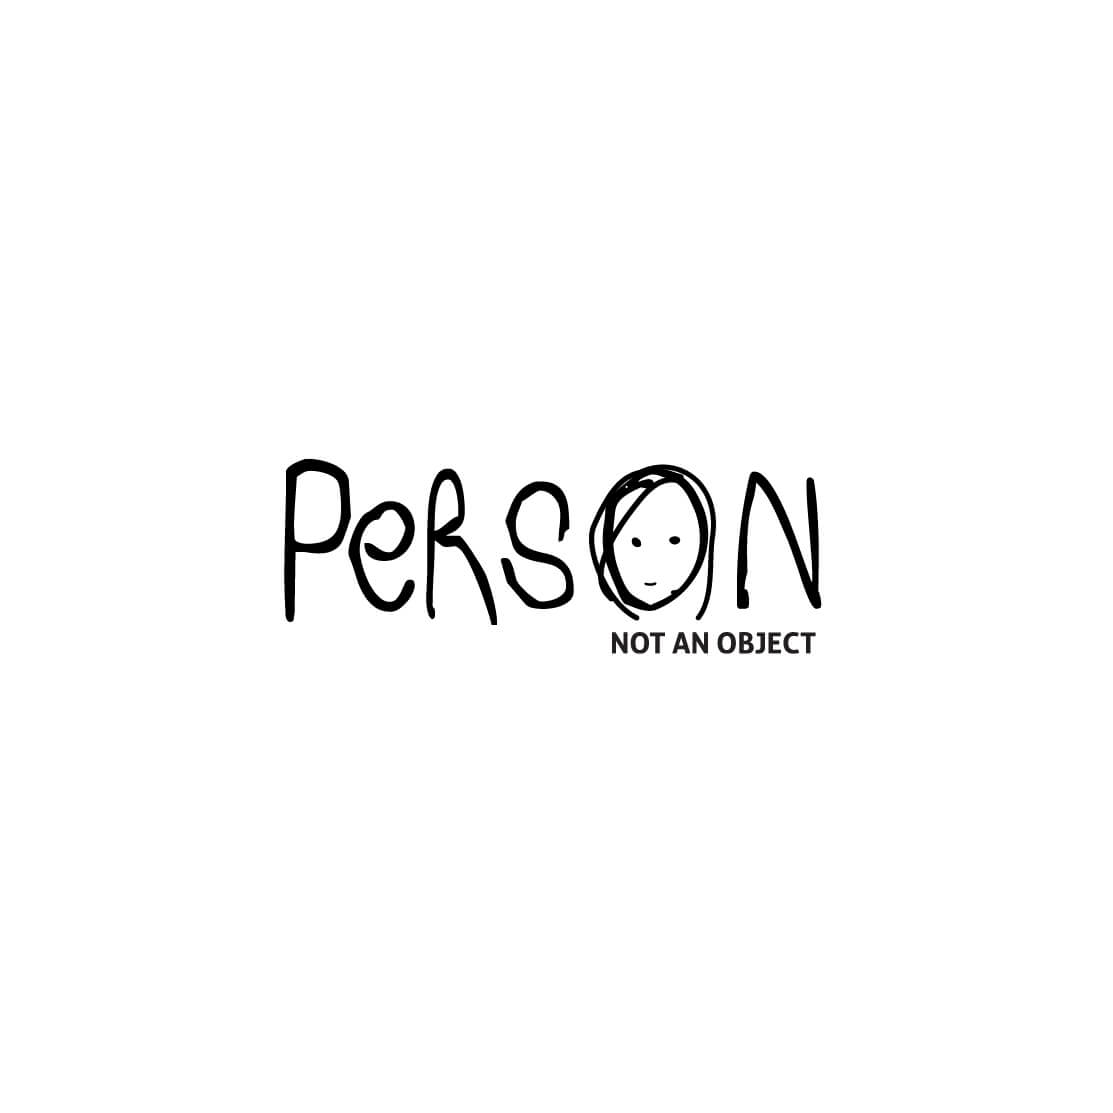 person. not an object